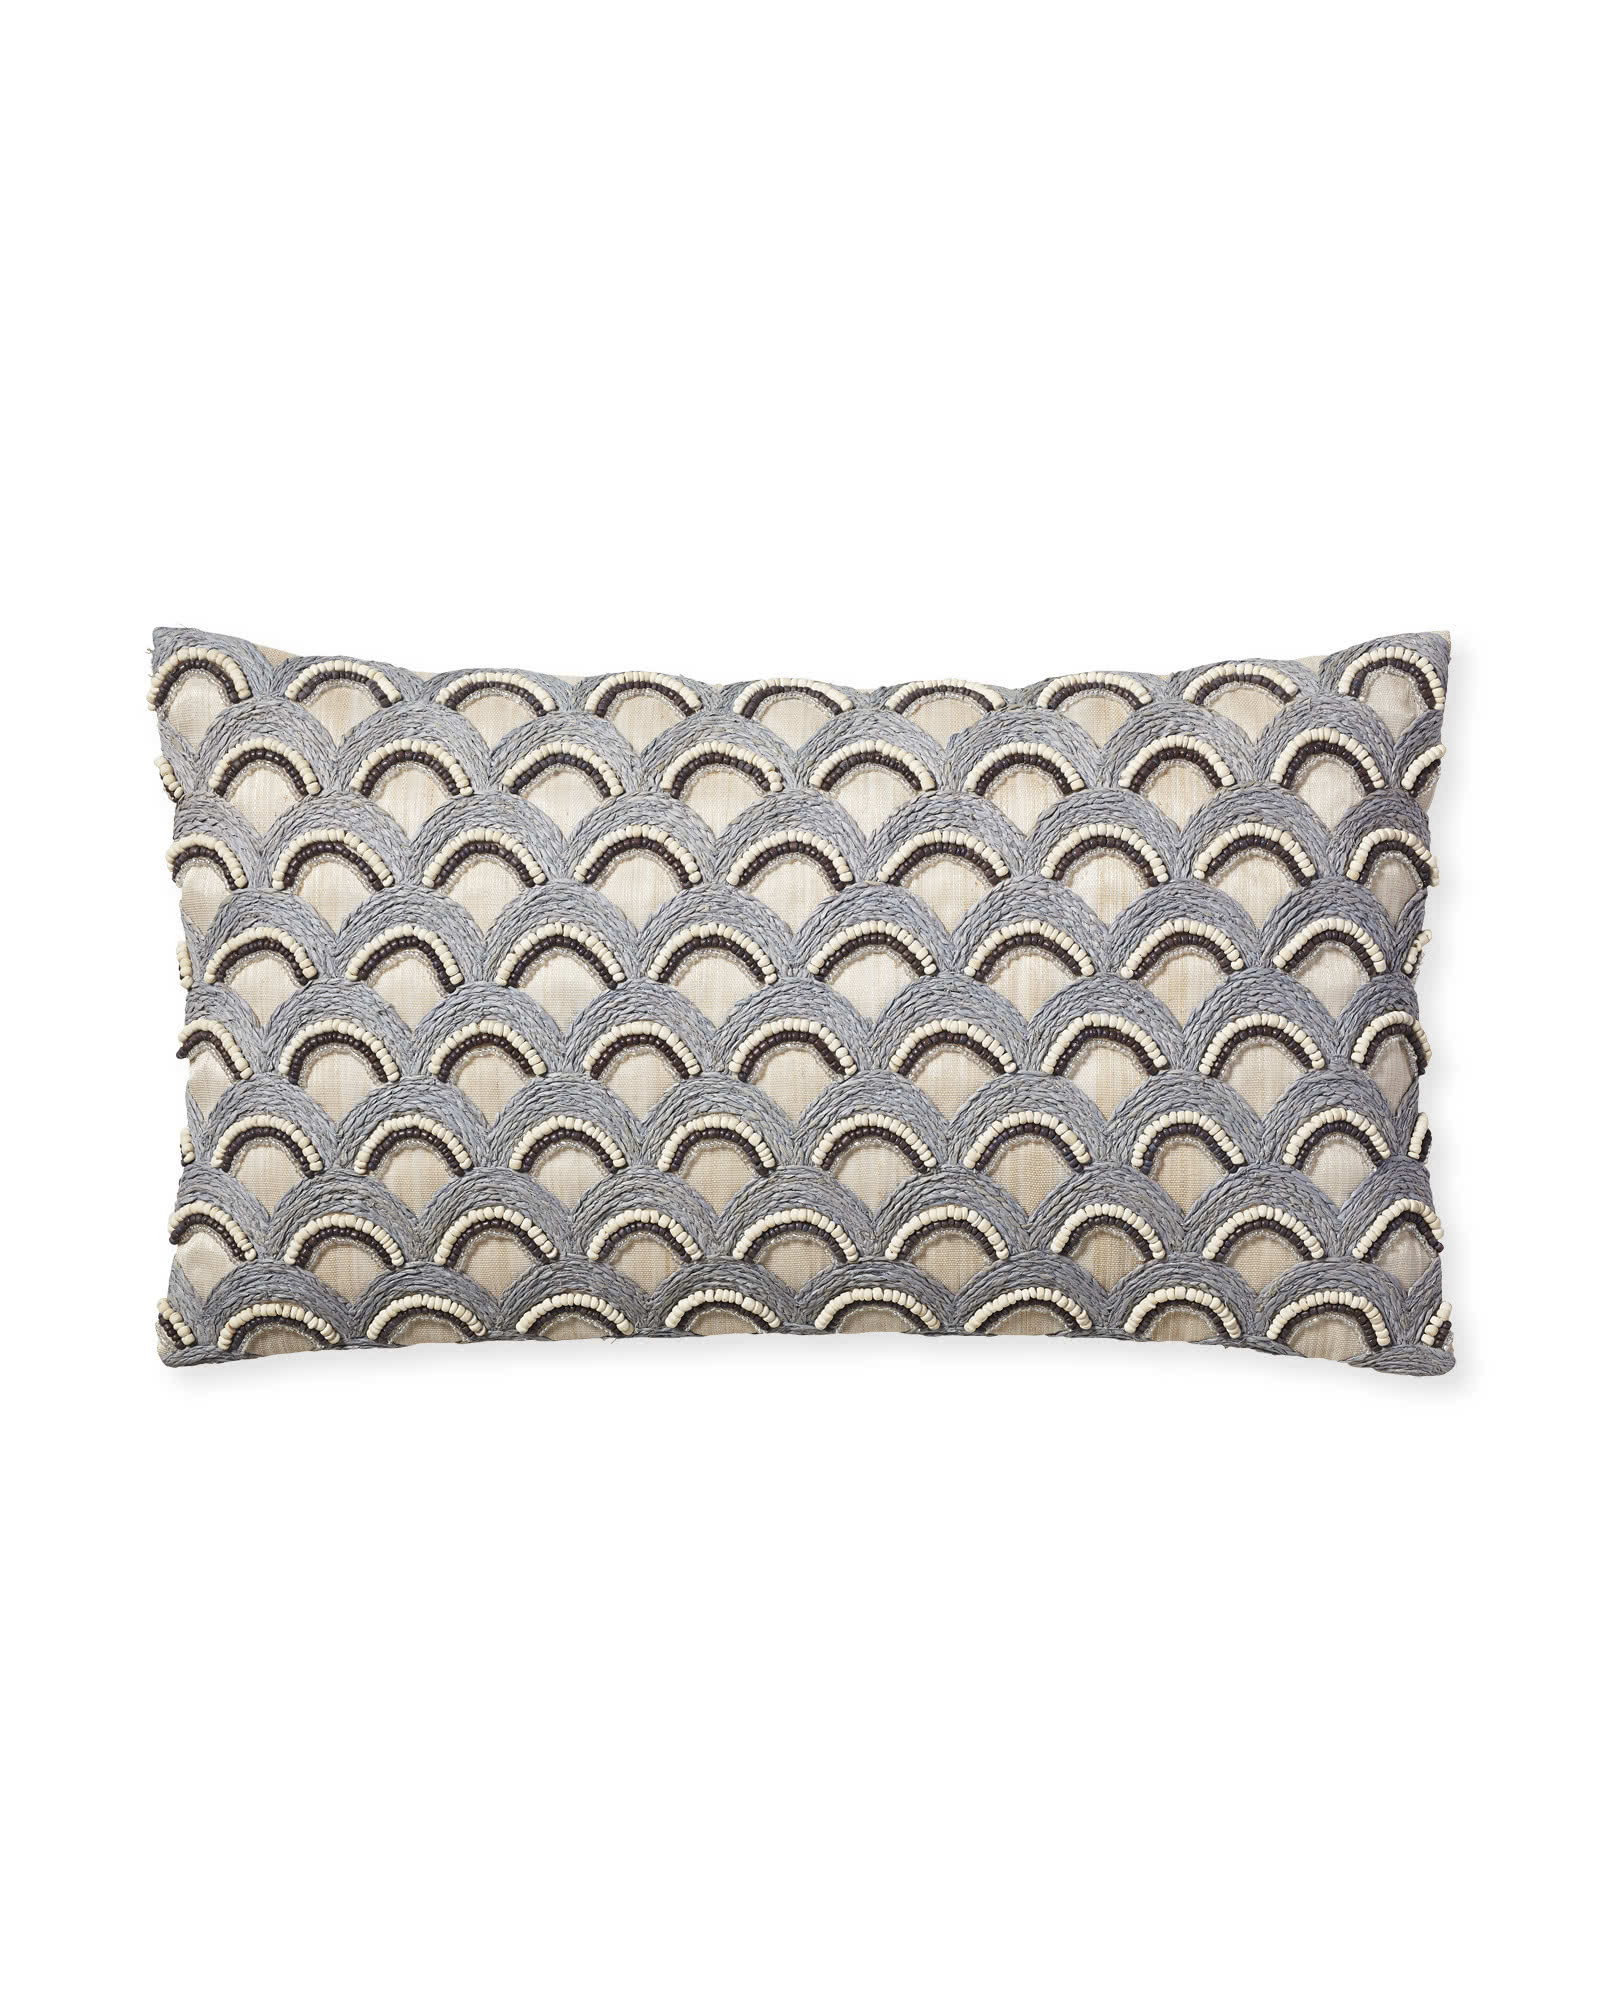 Avila Pillow Cover, Sky